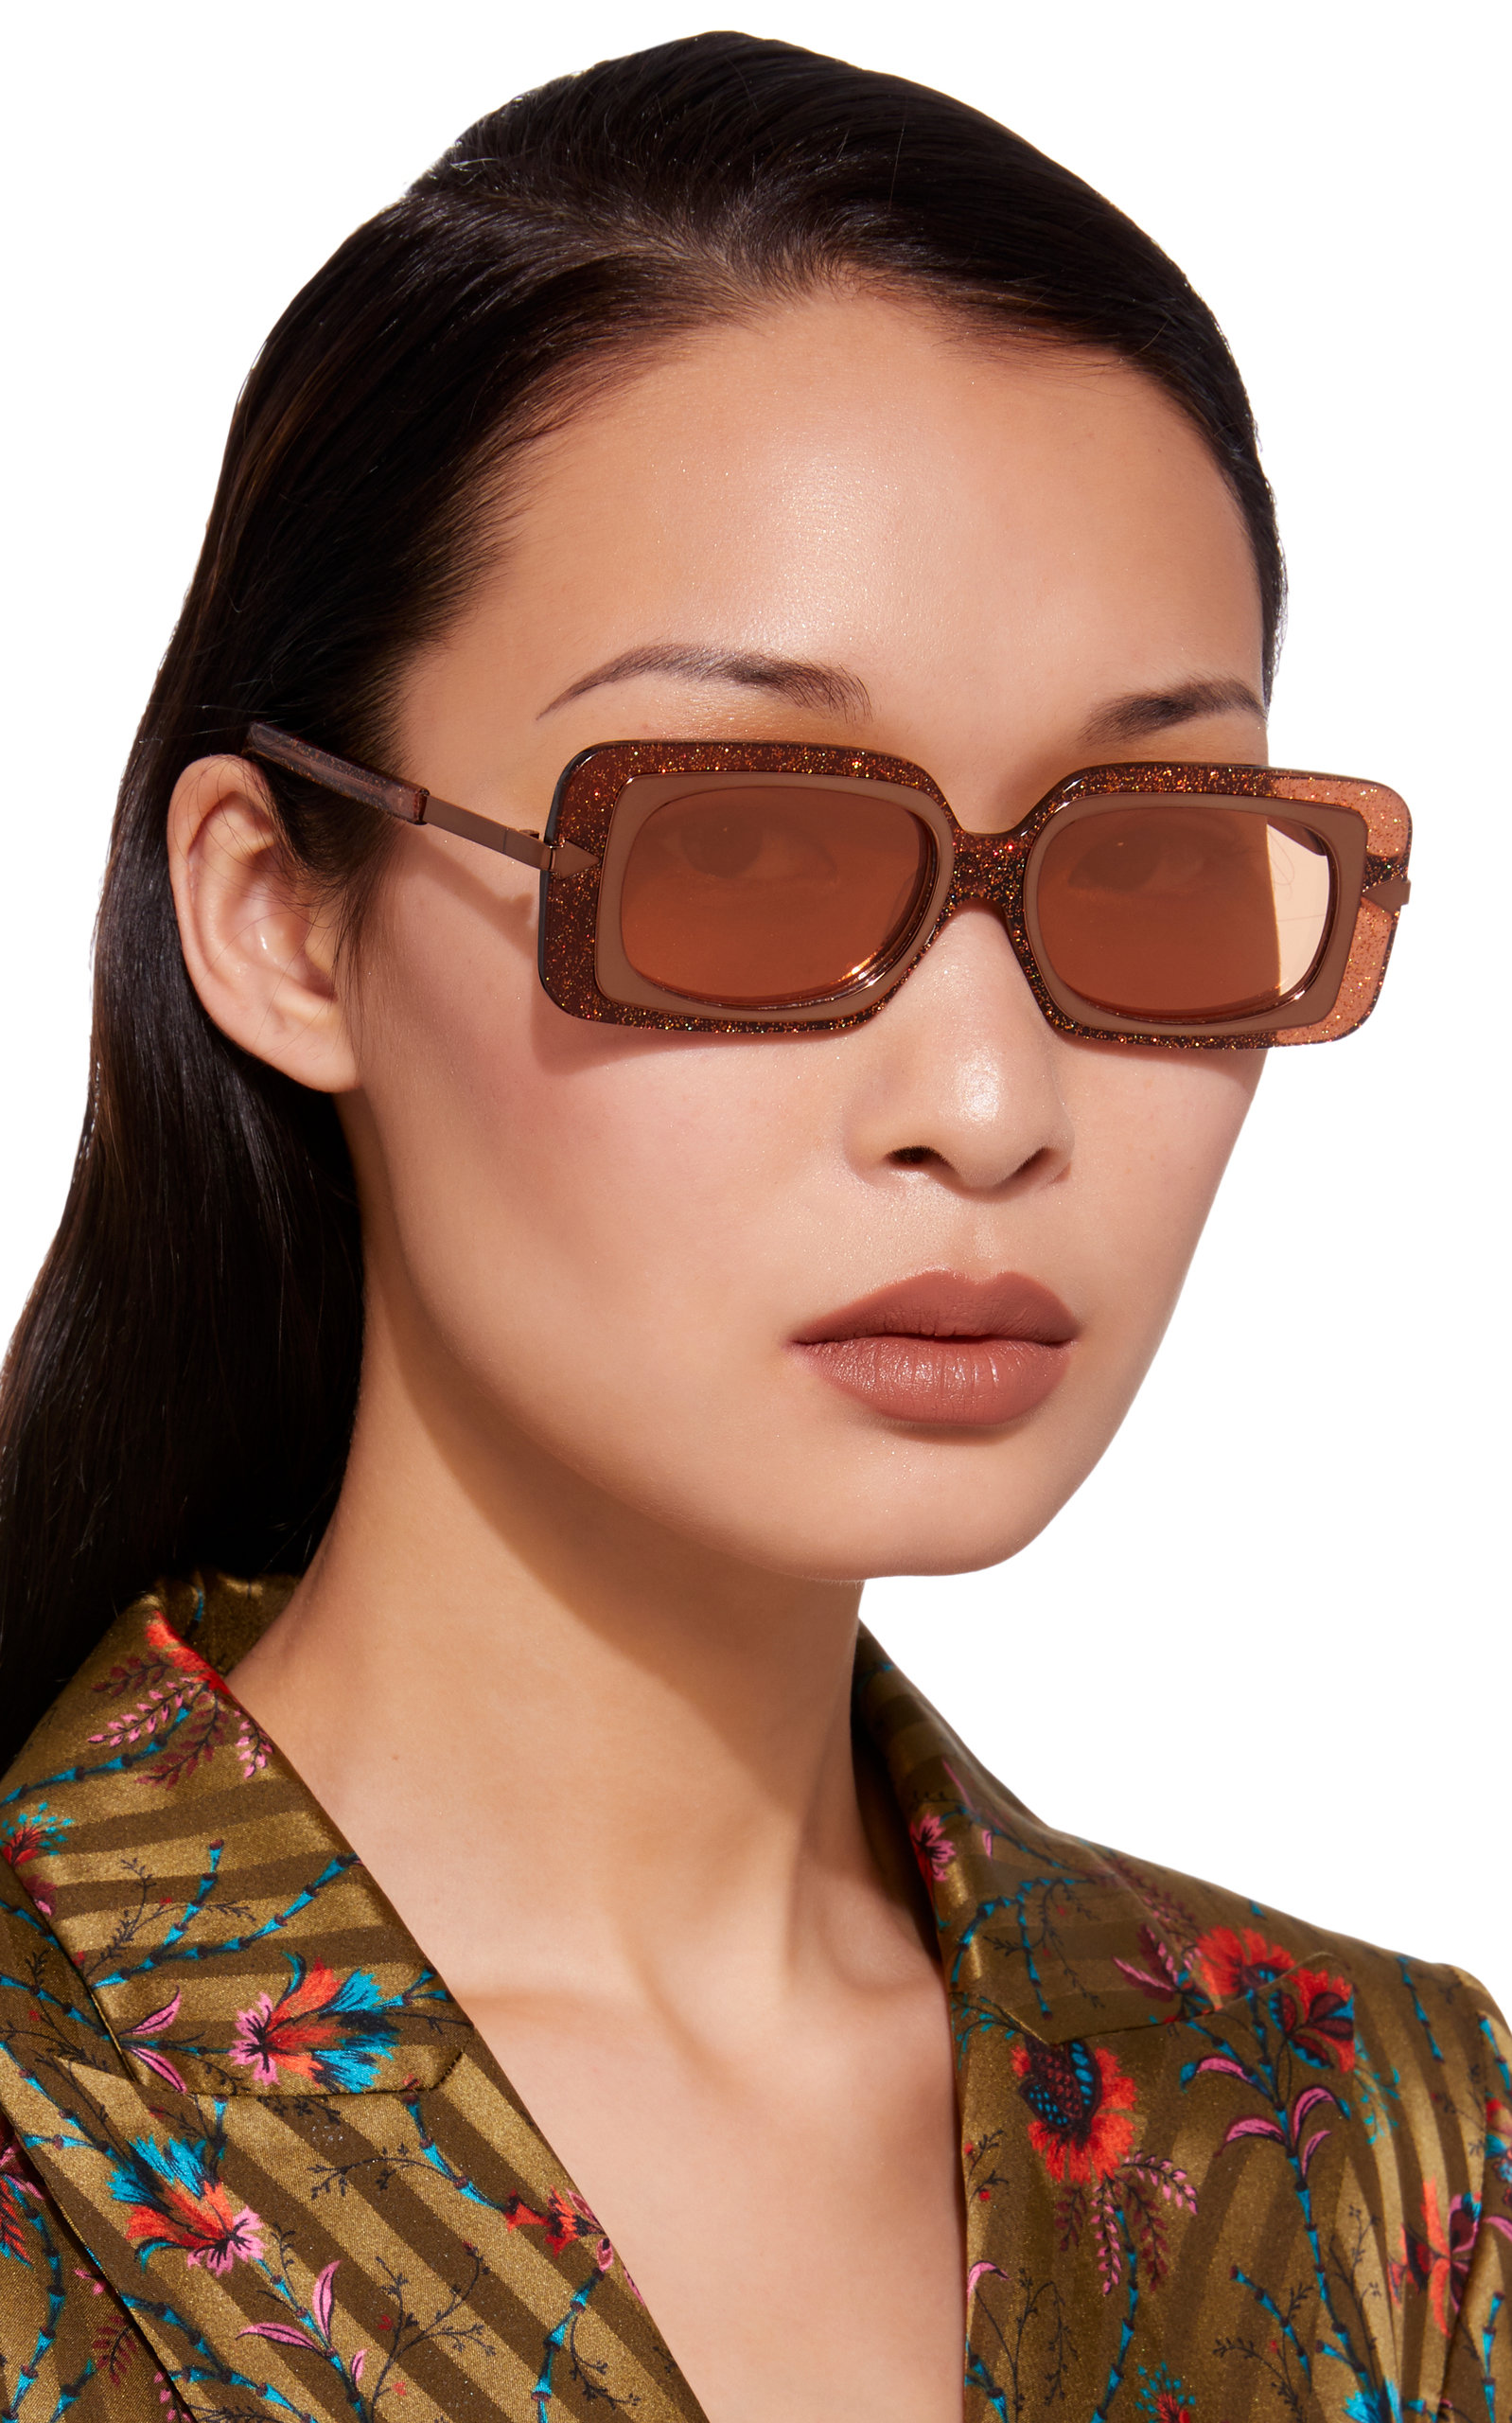 Mr Binnacle Square Sunglasses Karen Walker 9BcSHmzq